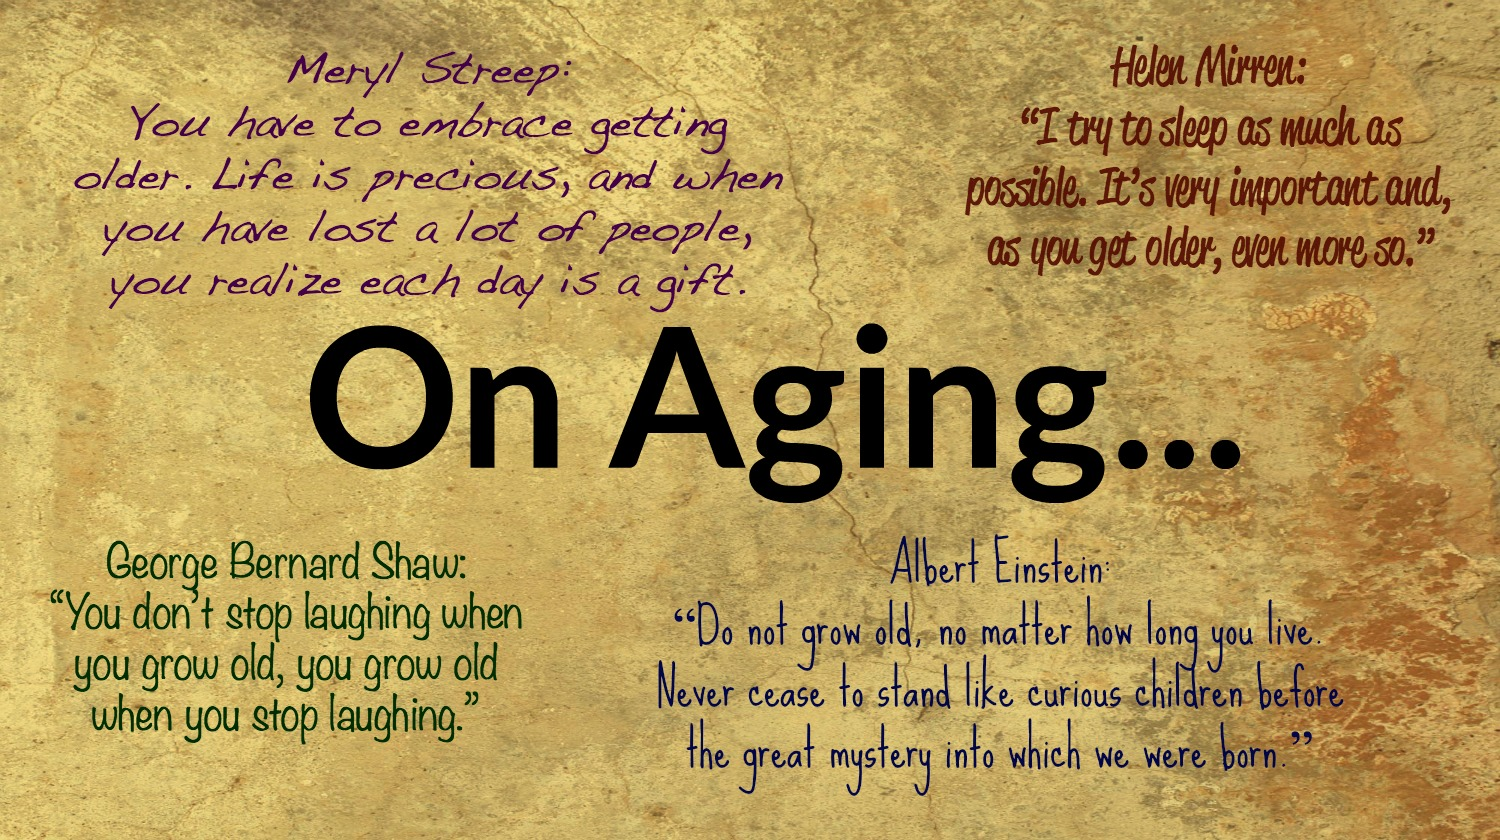 Have A Great Life Quotes 7 Inspirational Quotes For Aging Gracefully  Midlife Boulevard